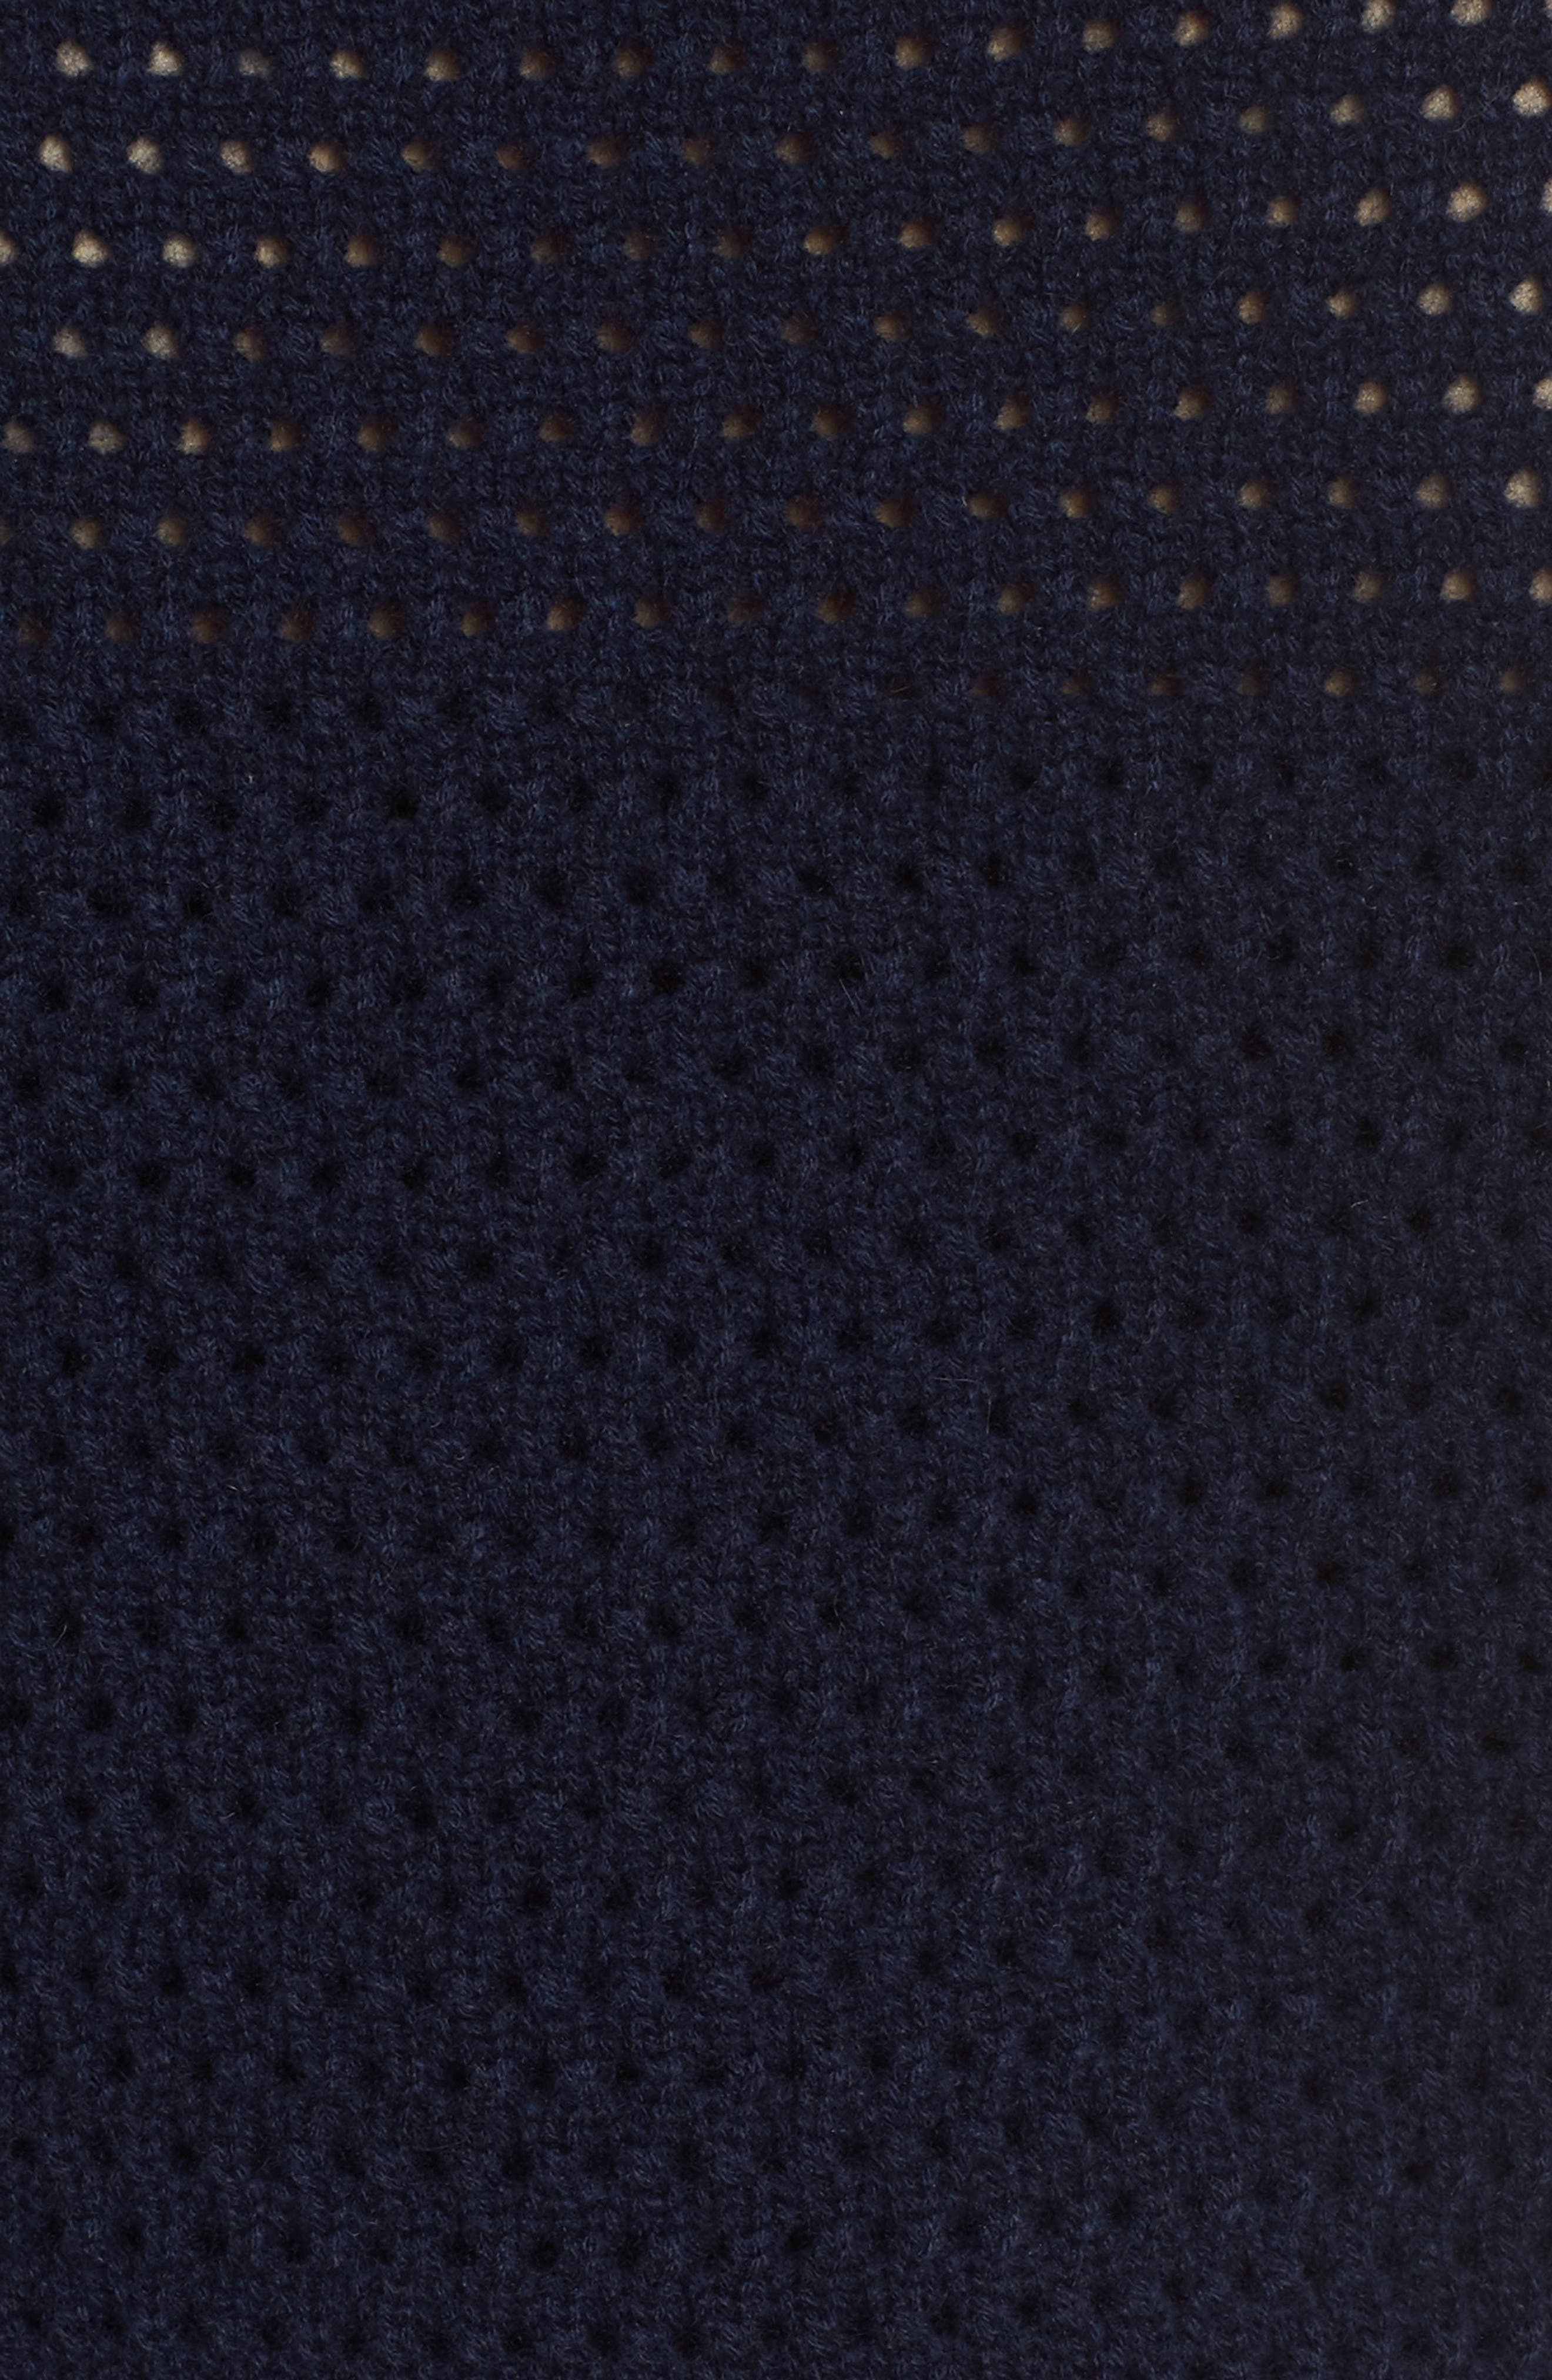 Mixed Stitch Cashmere Sweater,                             Alternate thumbnail 5, color,                             Navy Medieval